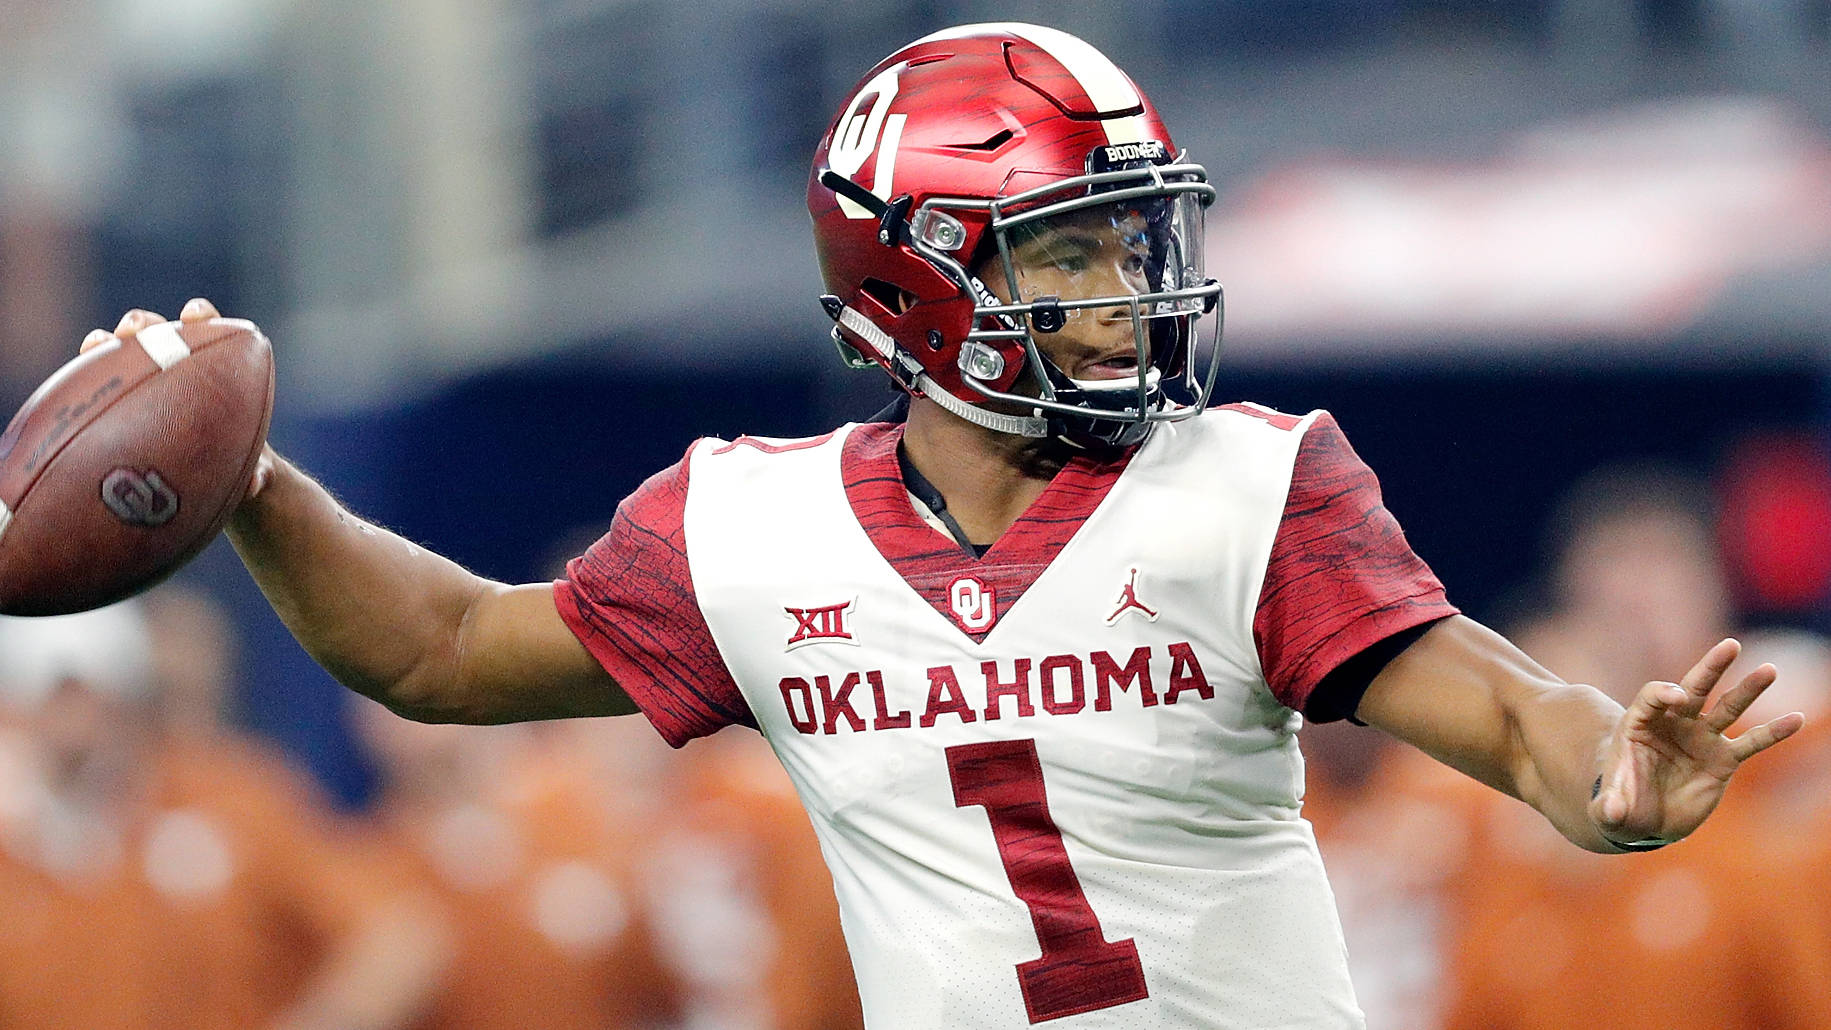 sports shoes a966b 48af0 Kyler Murray Named AP Player of the Year - University of ...